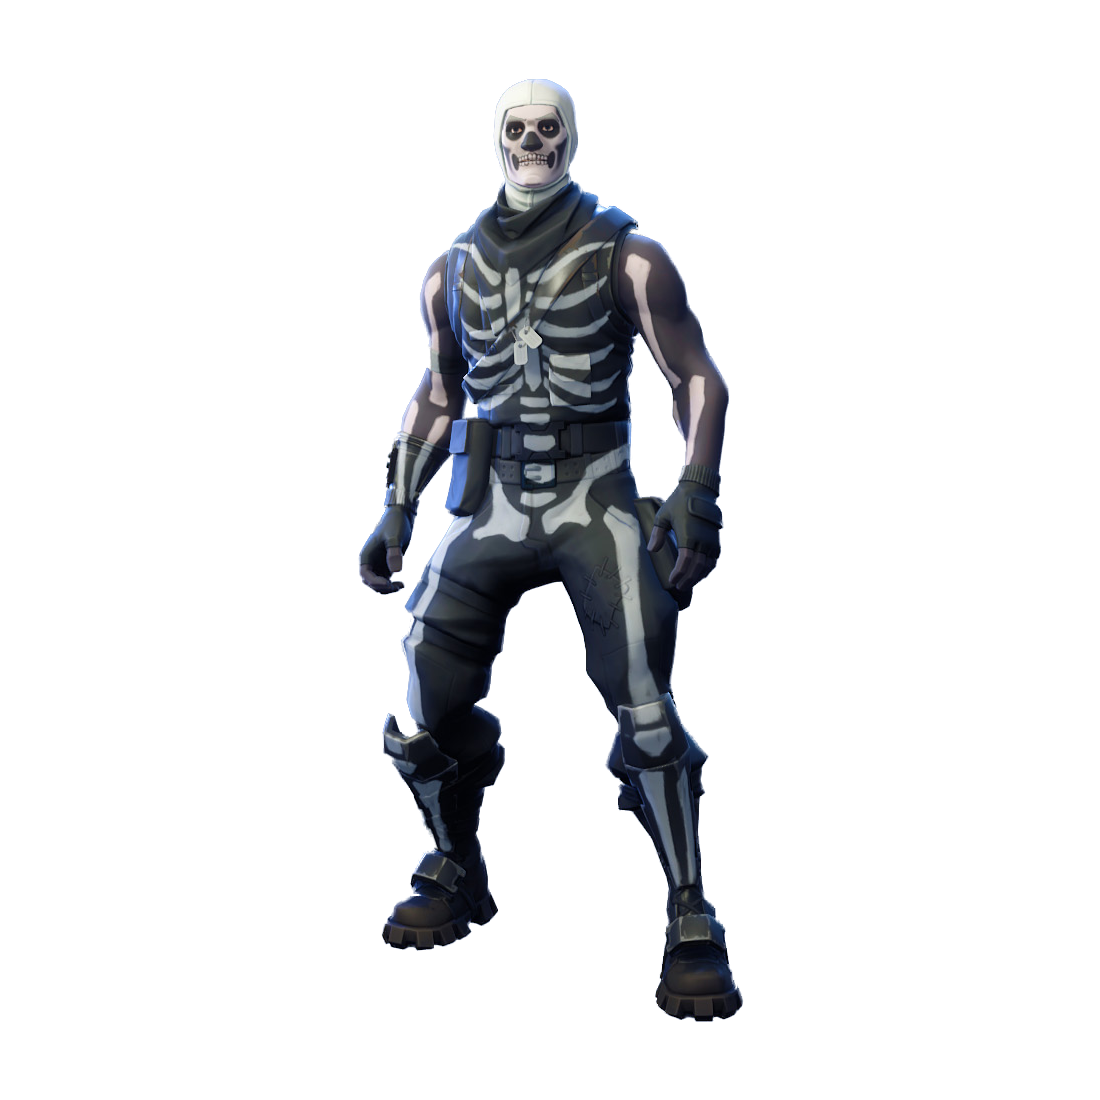 Skull trooper clipart purple transparent. Fortnite png image purepng